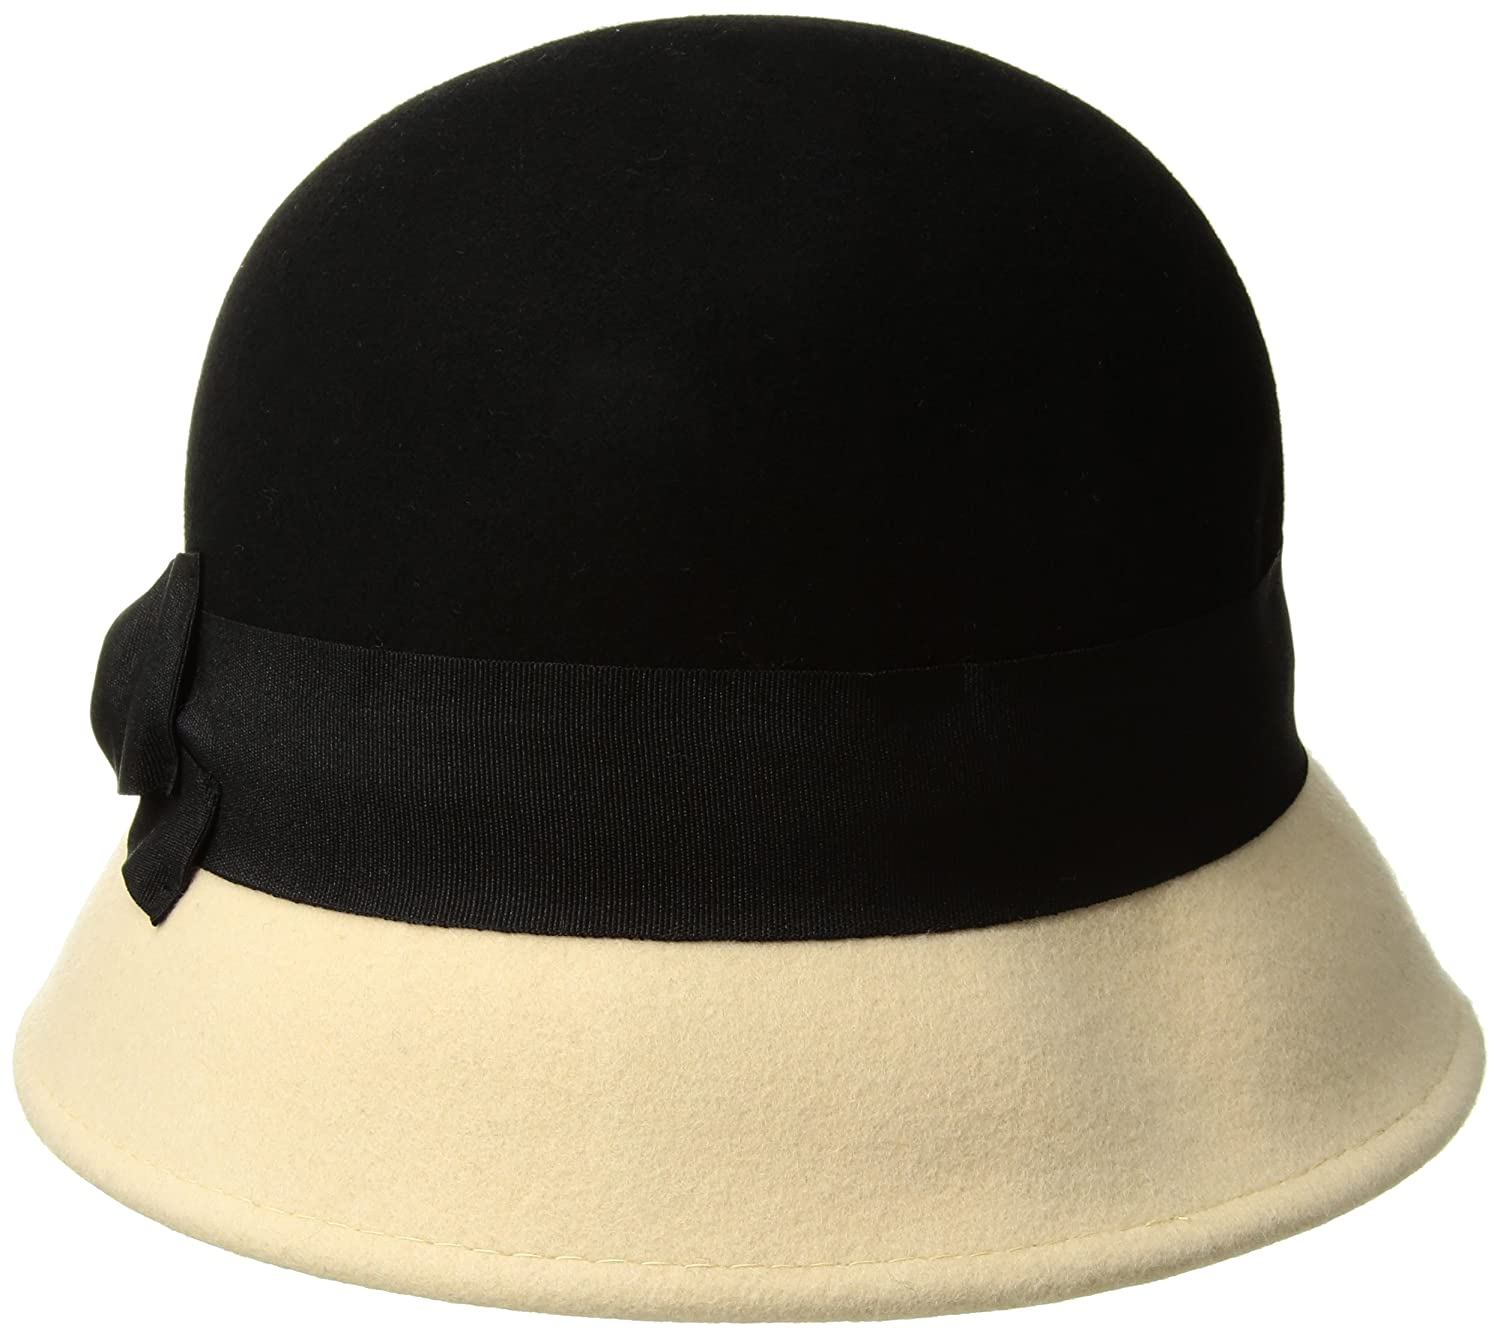 bef64ad2 San Diego Hat Company Women's 2 Inch Brim Wool Color Block Cloche Hat with  Grossgrain Bow, Black One Size: Amazon.ca: Clothing & Accessories